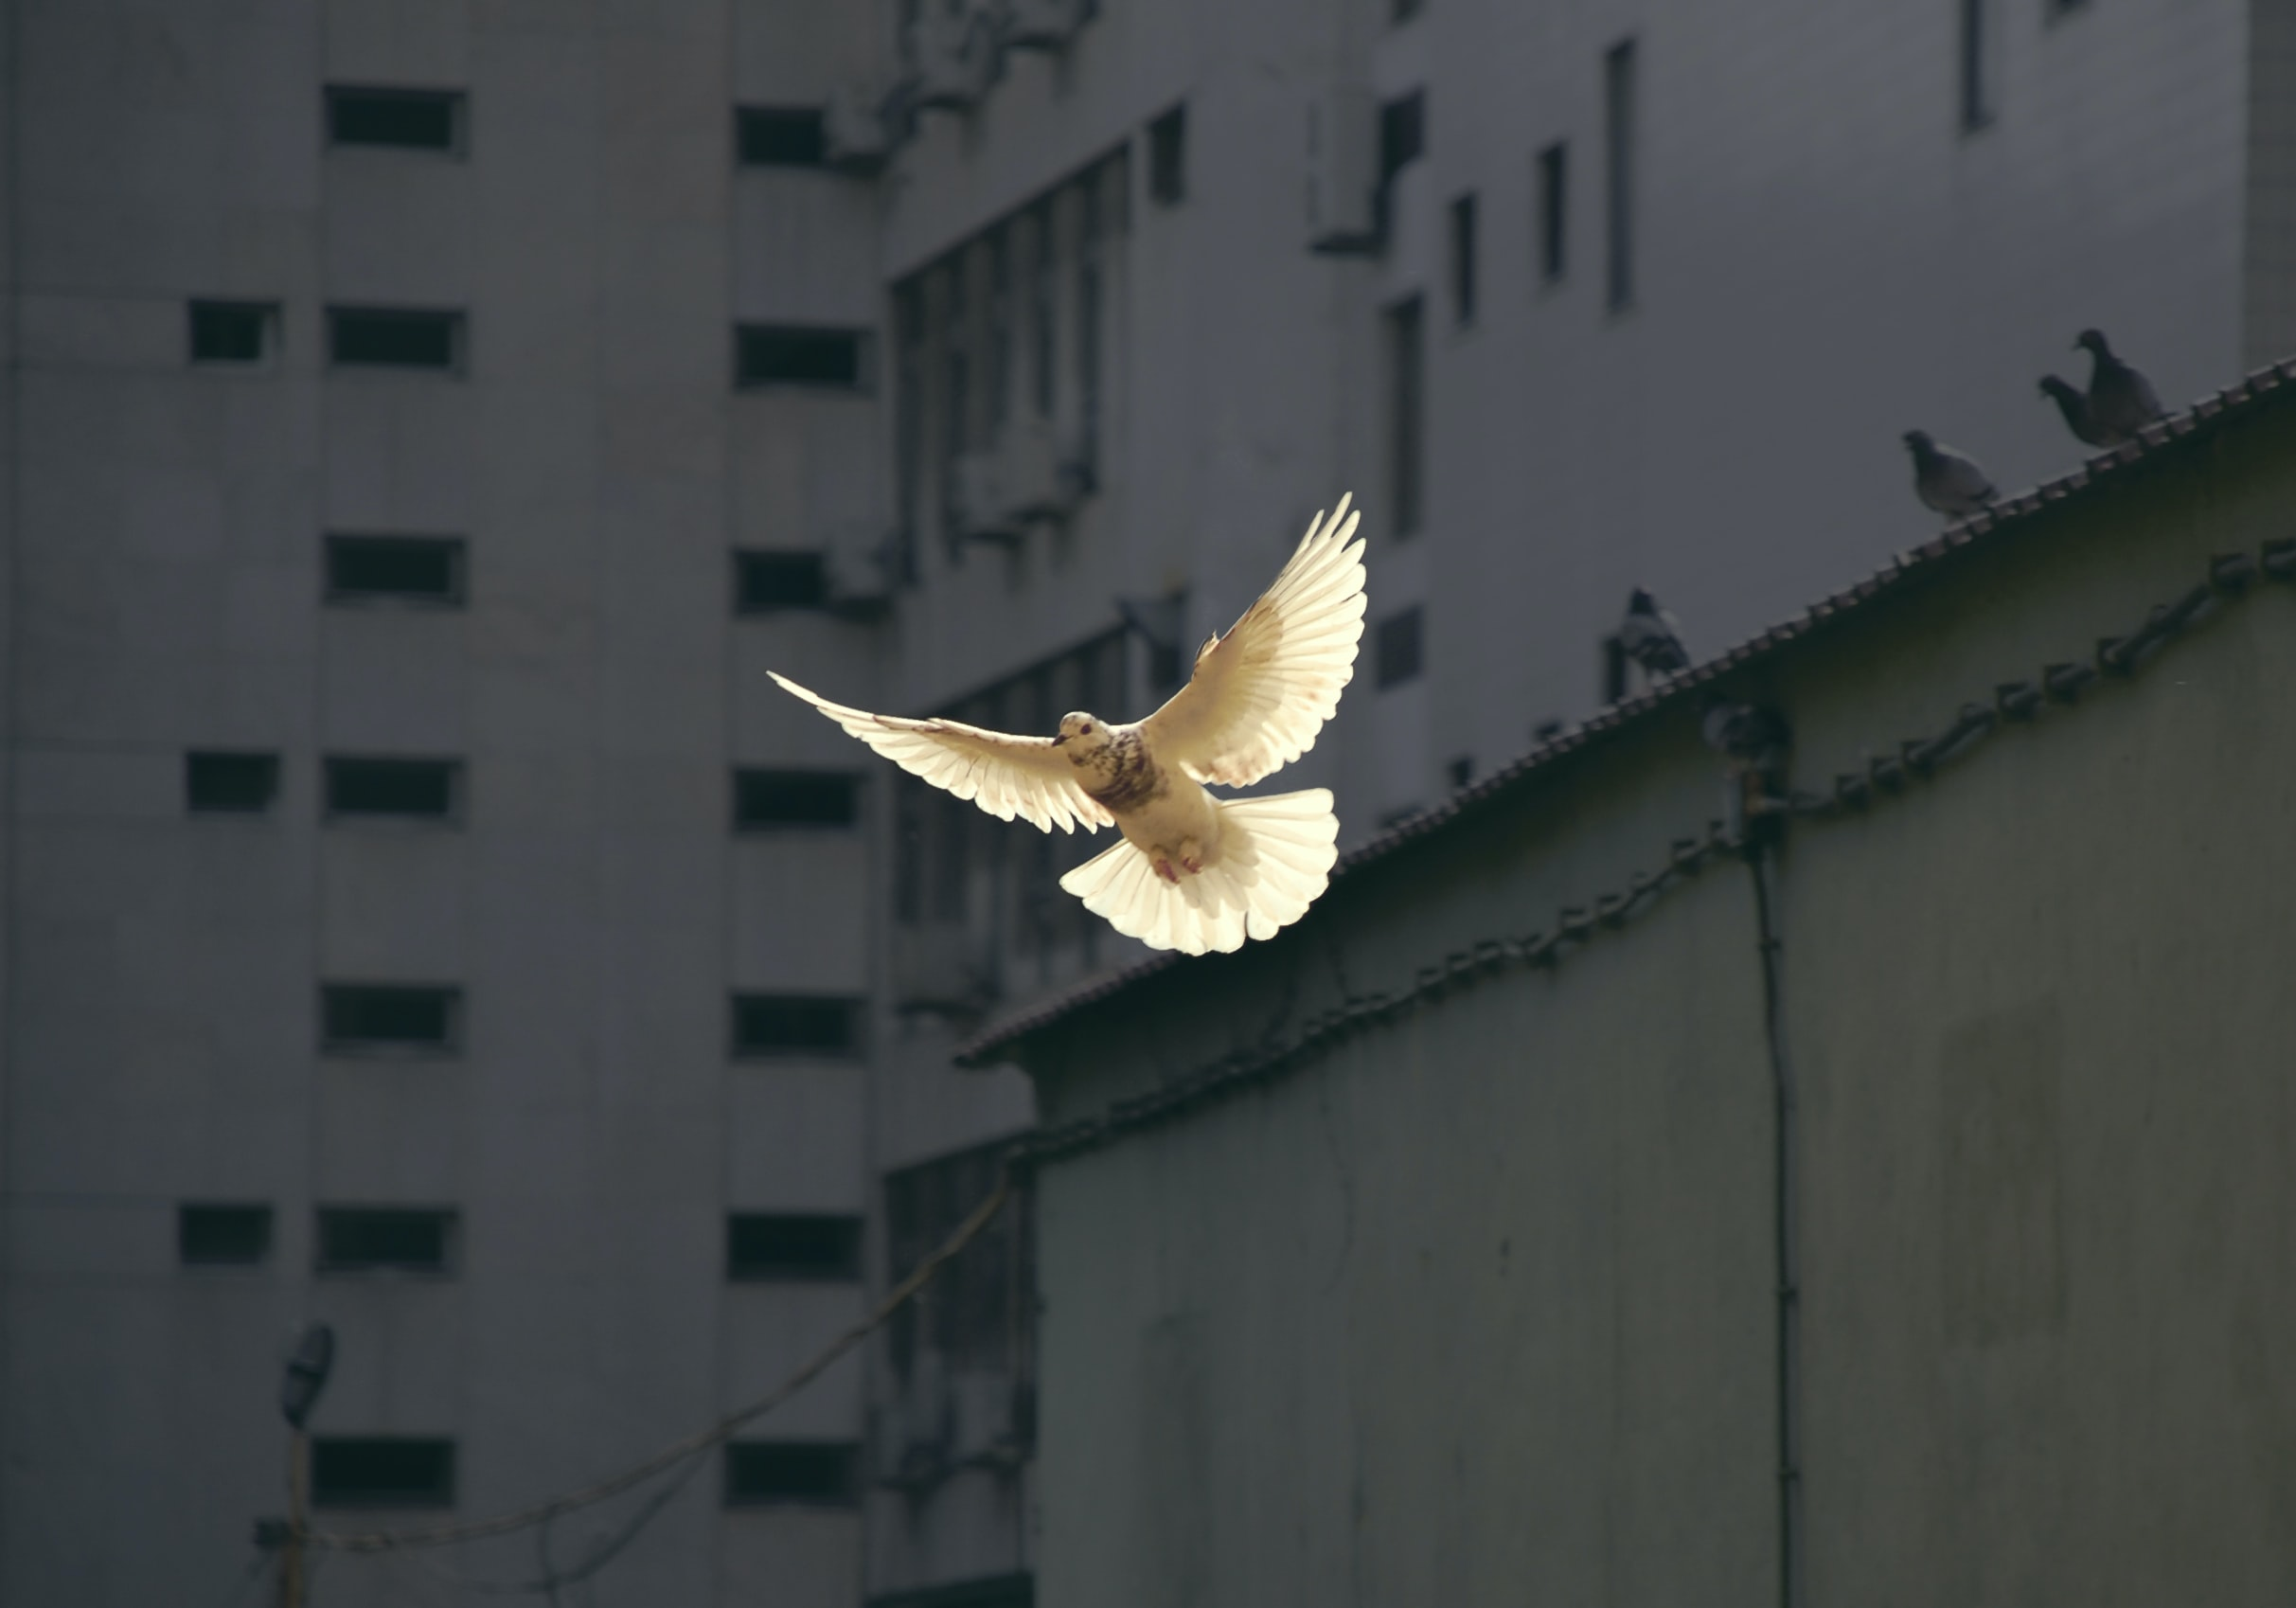 Dove flying over buildings  - Photo by Sunyu on Unsplash